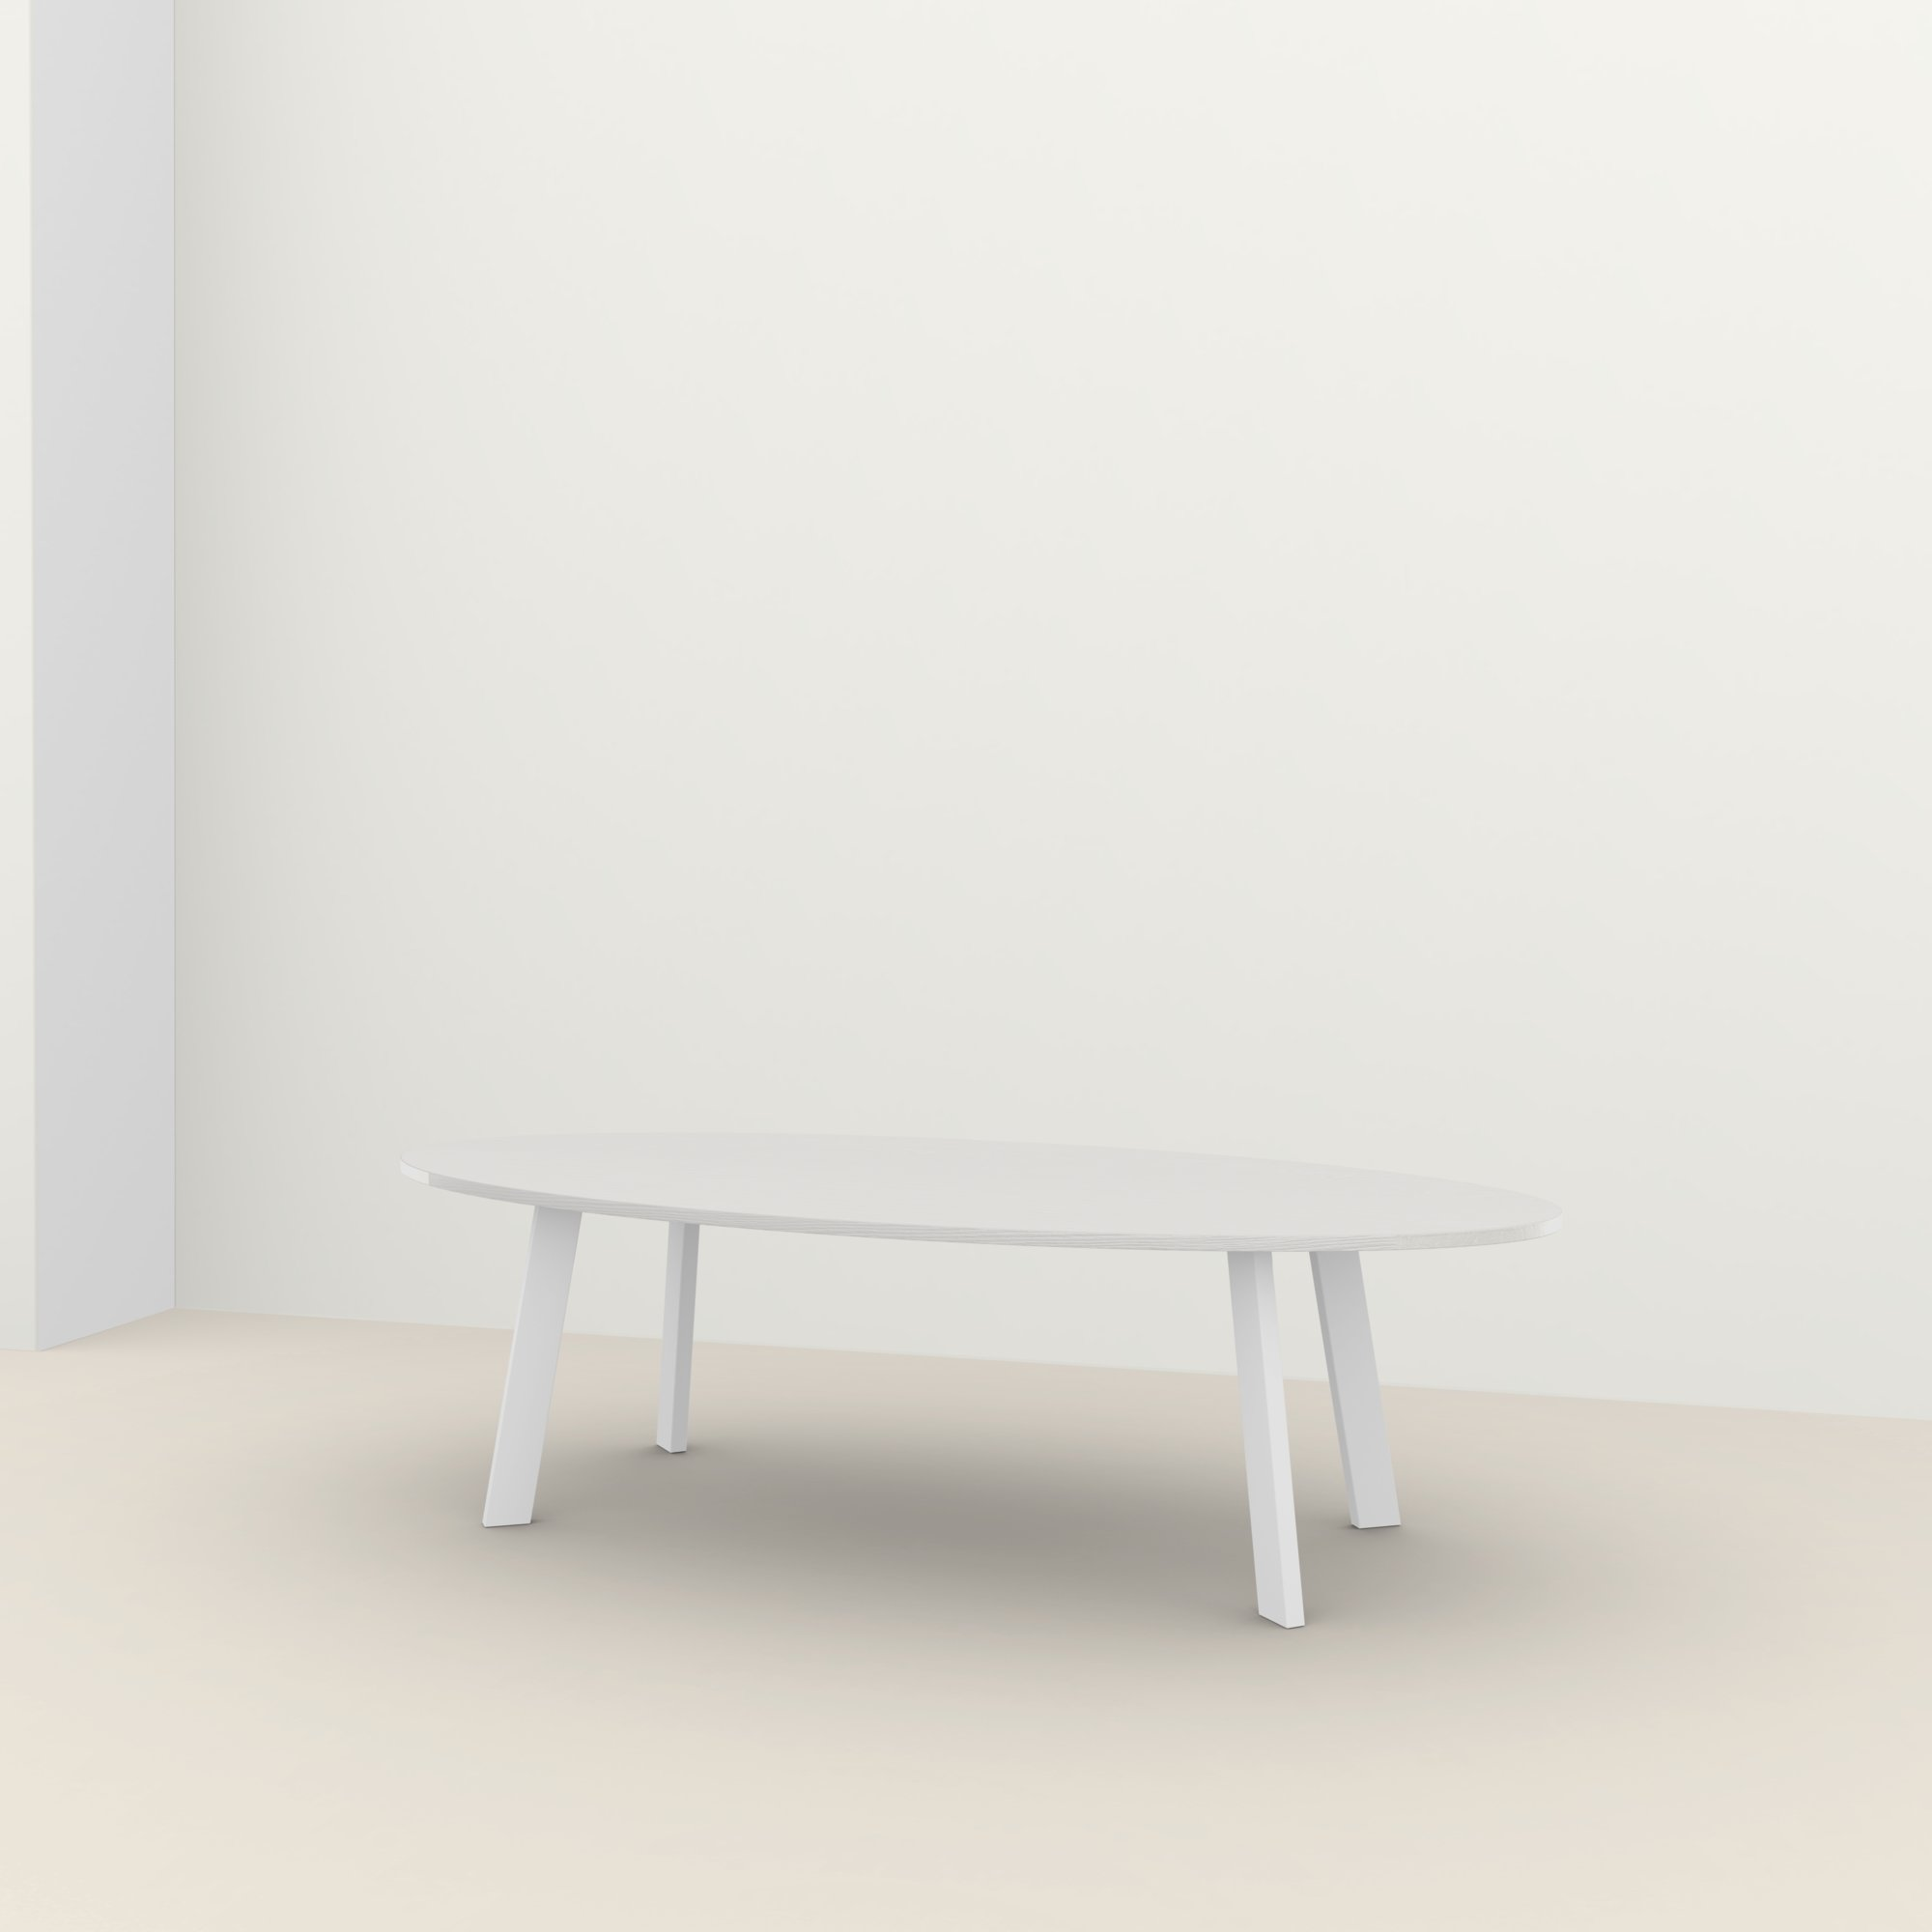 Ovale design tafel op maat | New Co Steel white powdercoating | Oak white lacquer | Studio HENK |